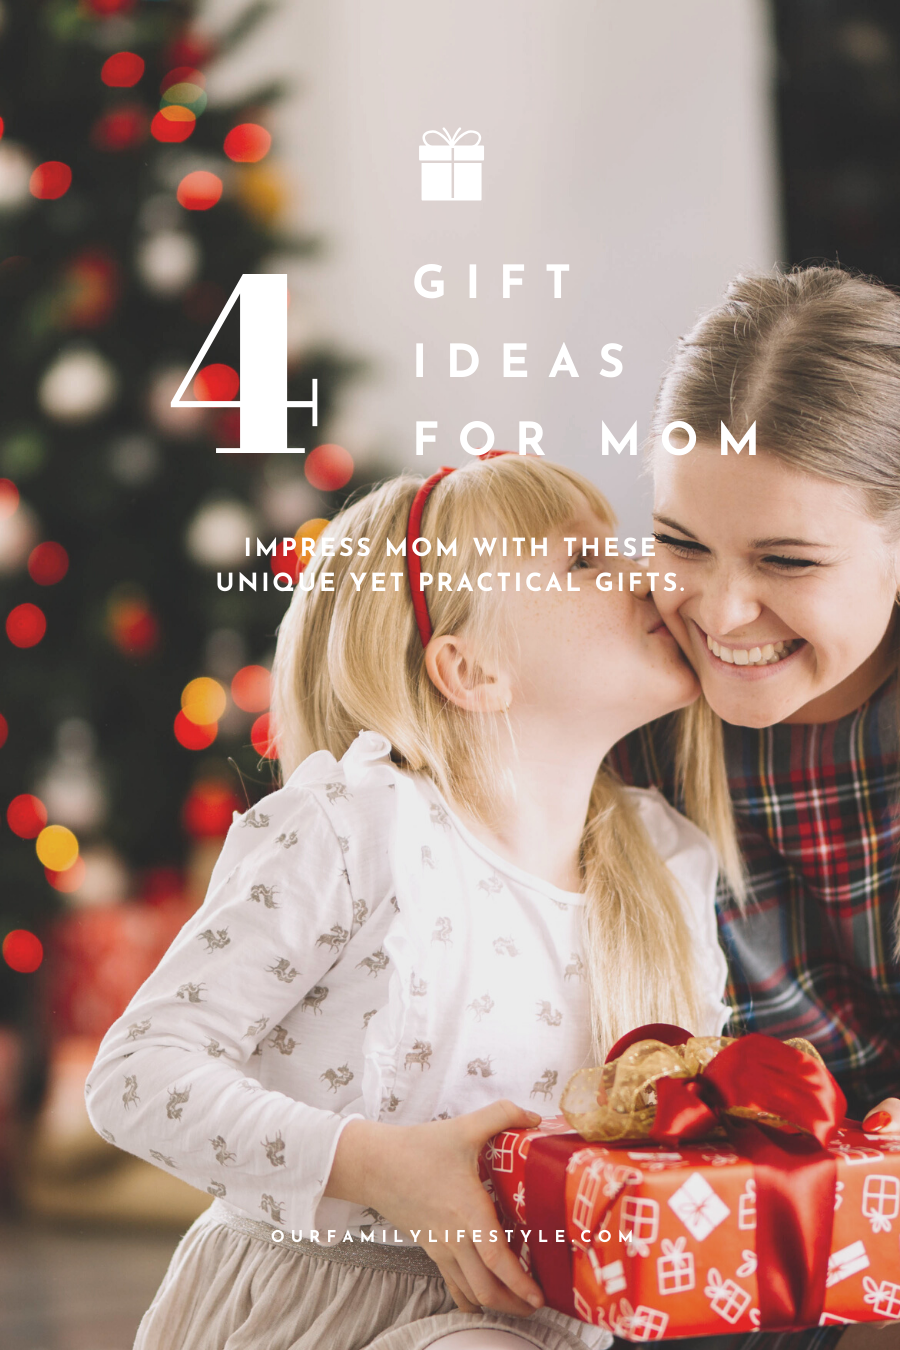 4 Gift Ideas for Mom